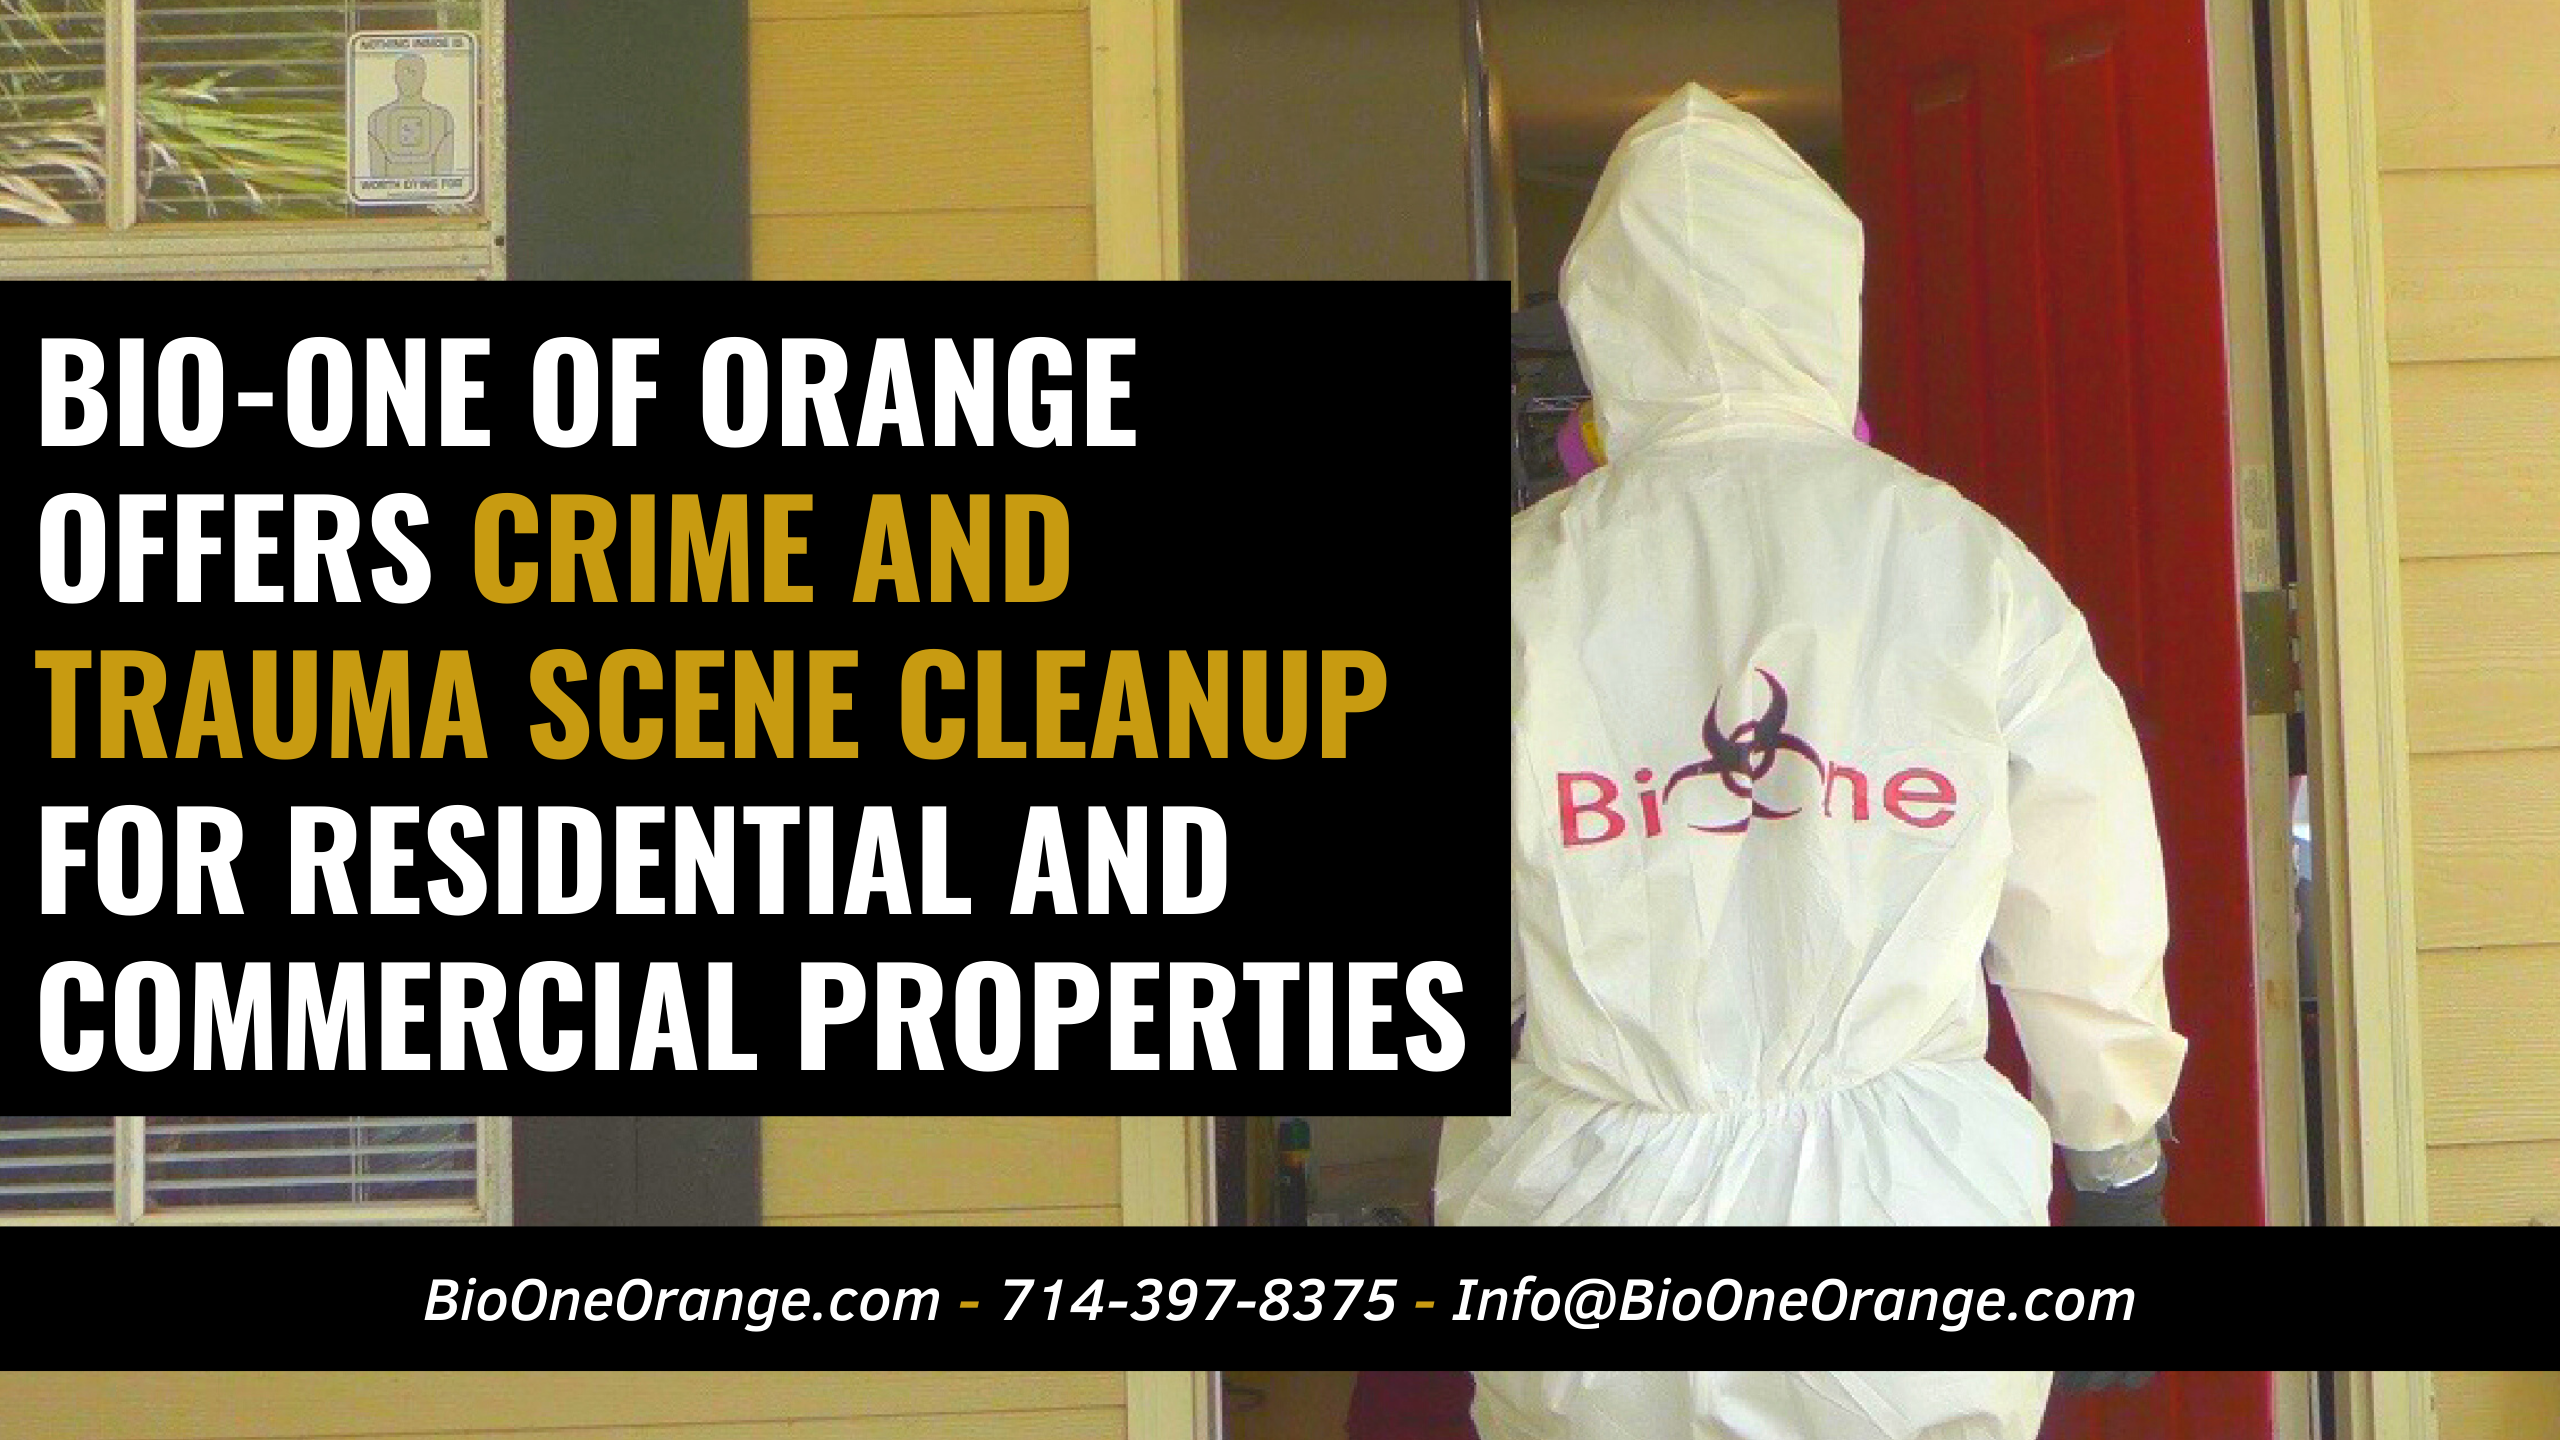 Bio-One of Orange offers Crime and Trauma scene cleanup services for Residential and Commercial properties!